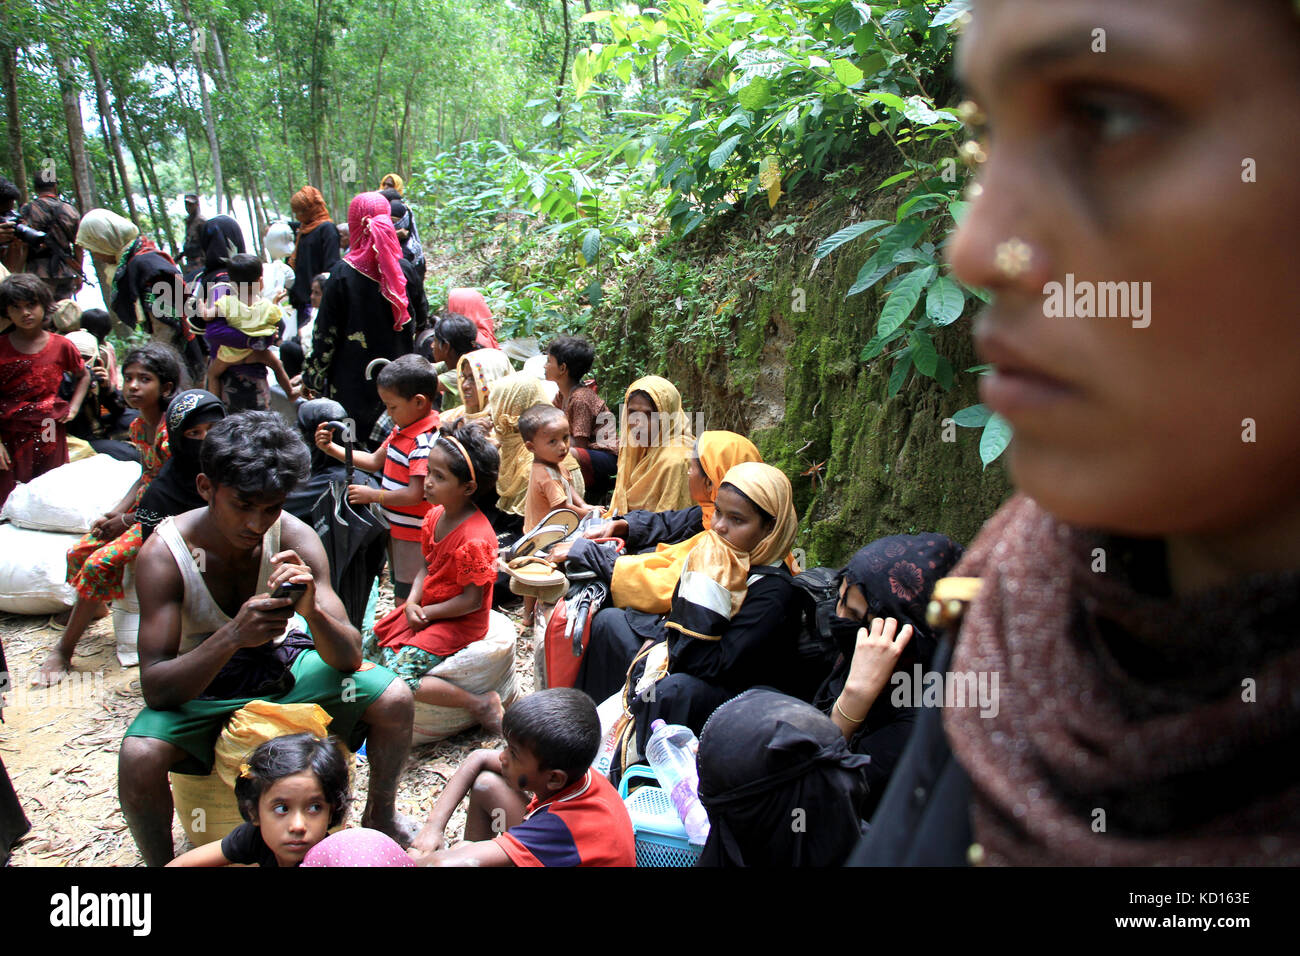 Bangladesh. Myanmar's Rohingya refugees entered in Cox's Bazar, Bangladesh. © Rehman Asad/Alamy Stock Photo - Stock Image